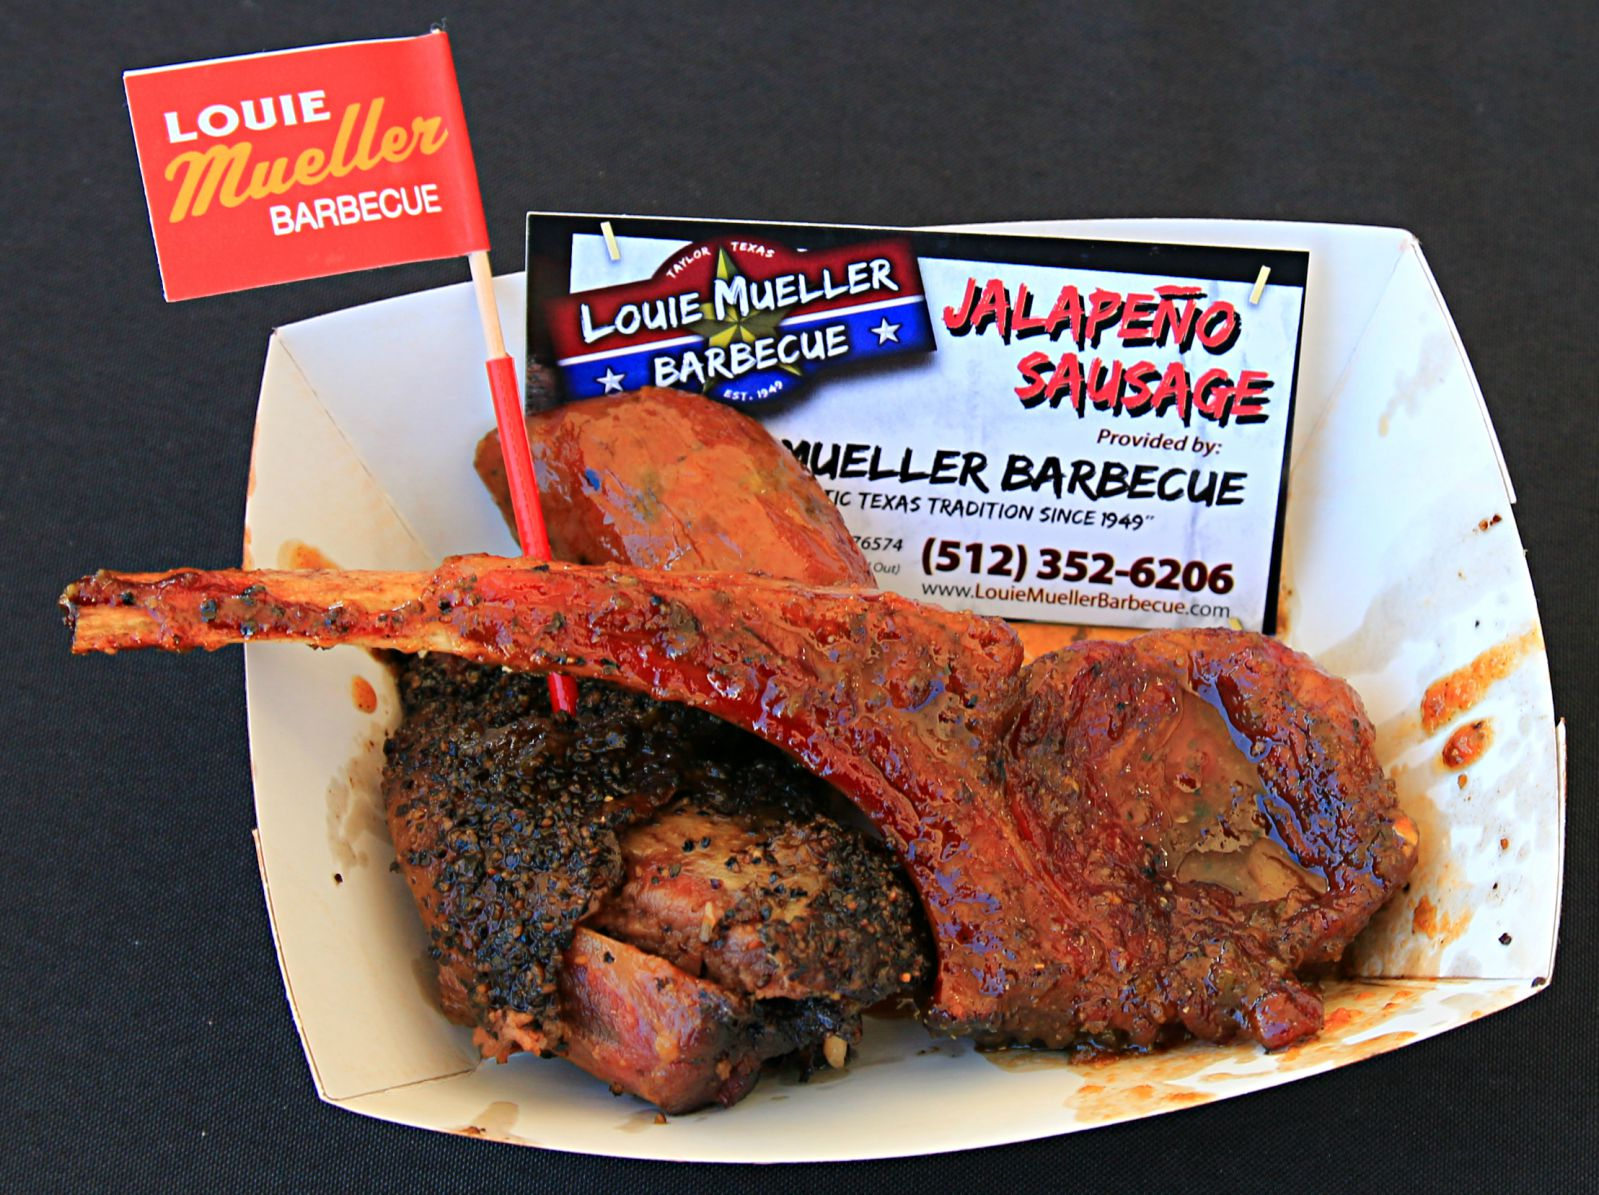 Beef rib, sausage, and lamb pop from Louie Mueller Barbecue at Texas Monthly BBQ Fest 2016